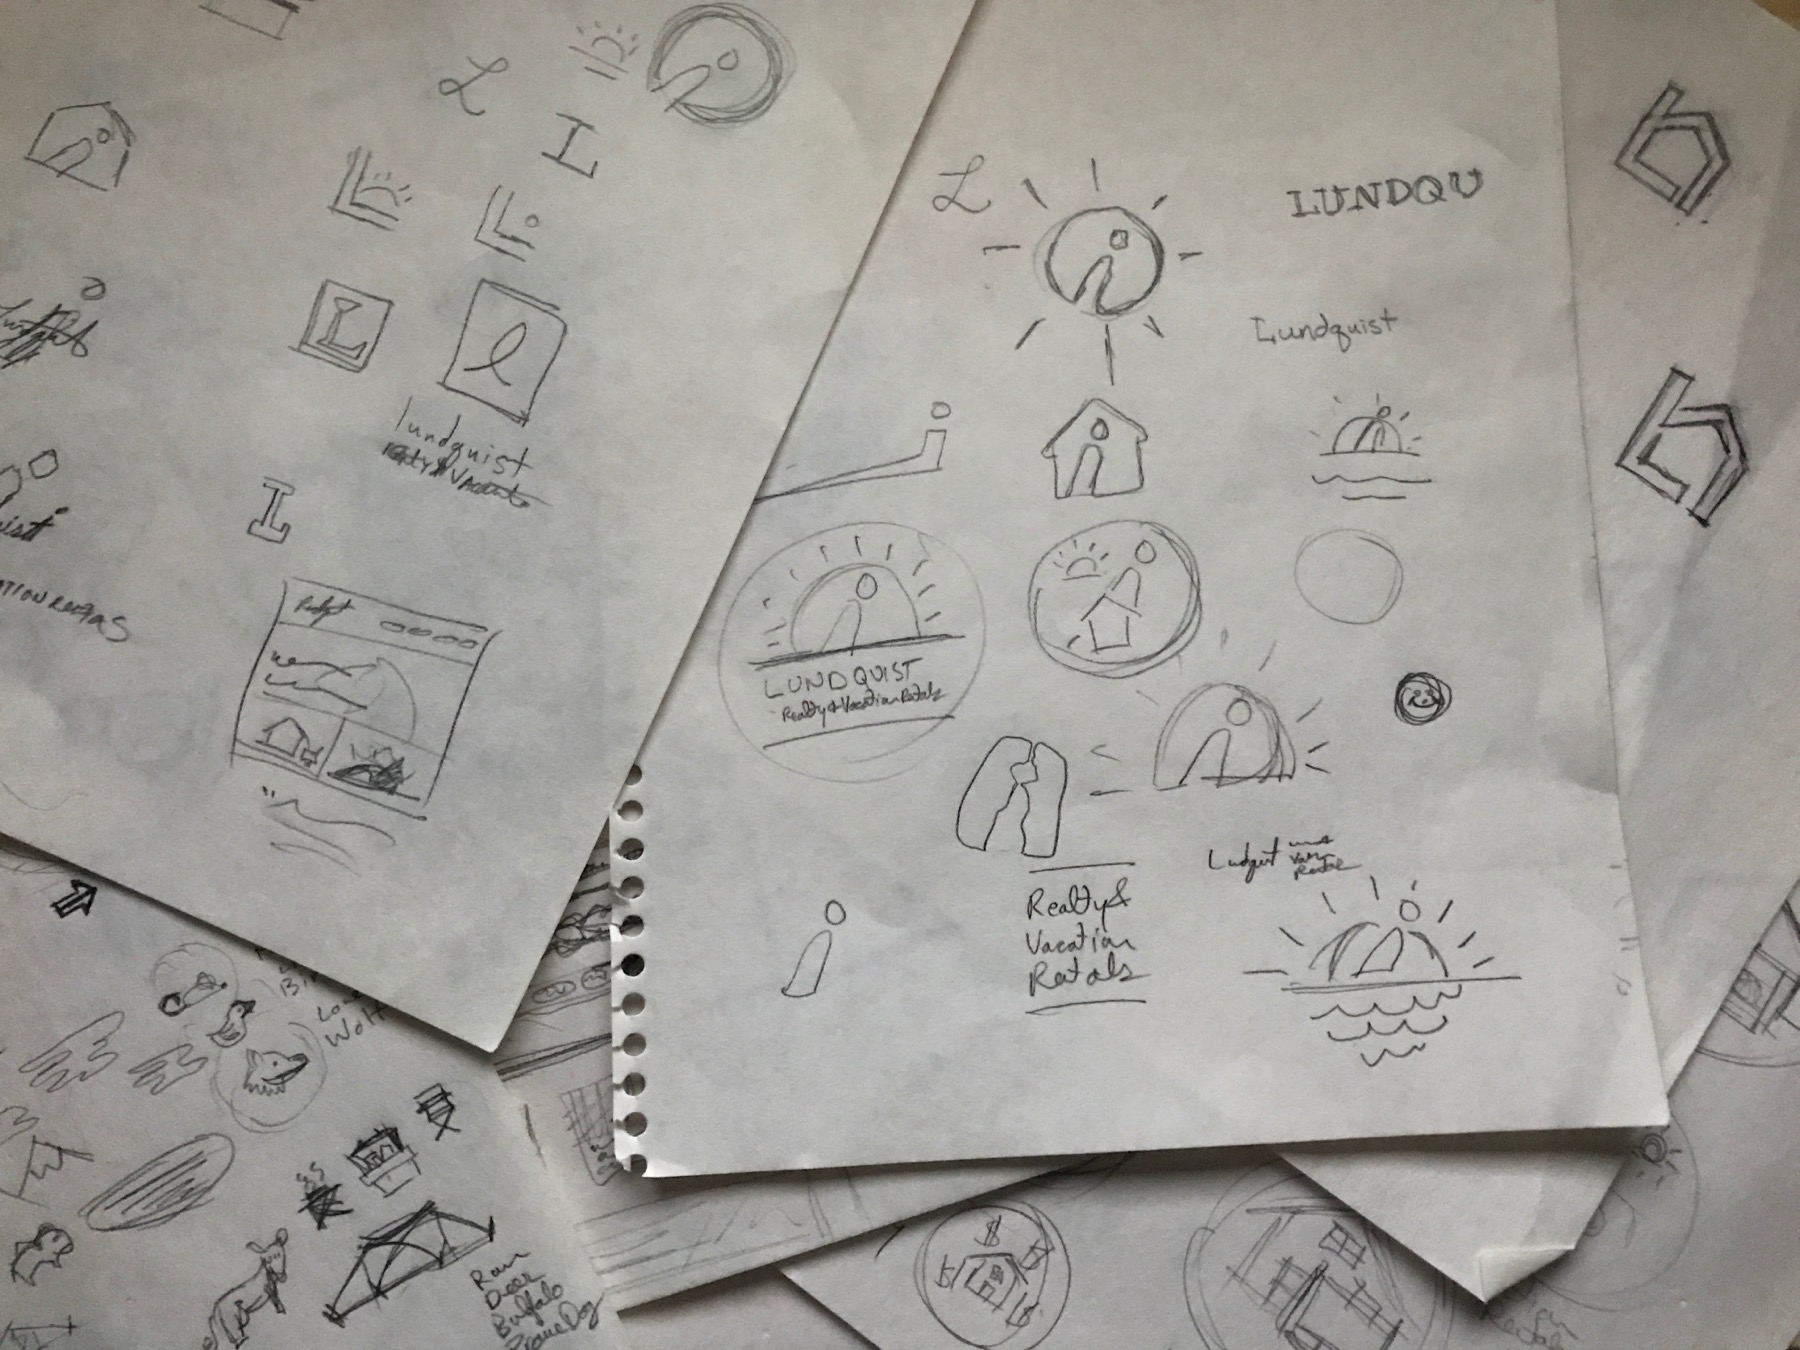 2. Concepting - We take your strategy and begin the process of developing visualization of the message and personality you aspire to communicate to your target market.